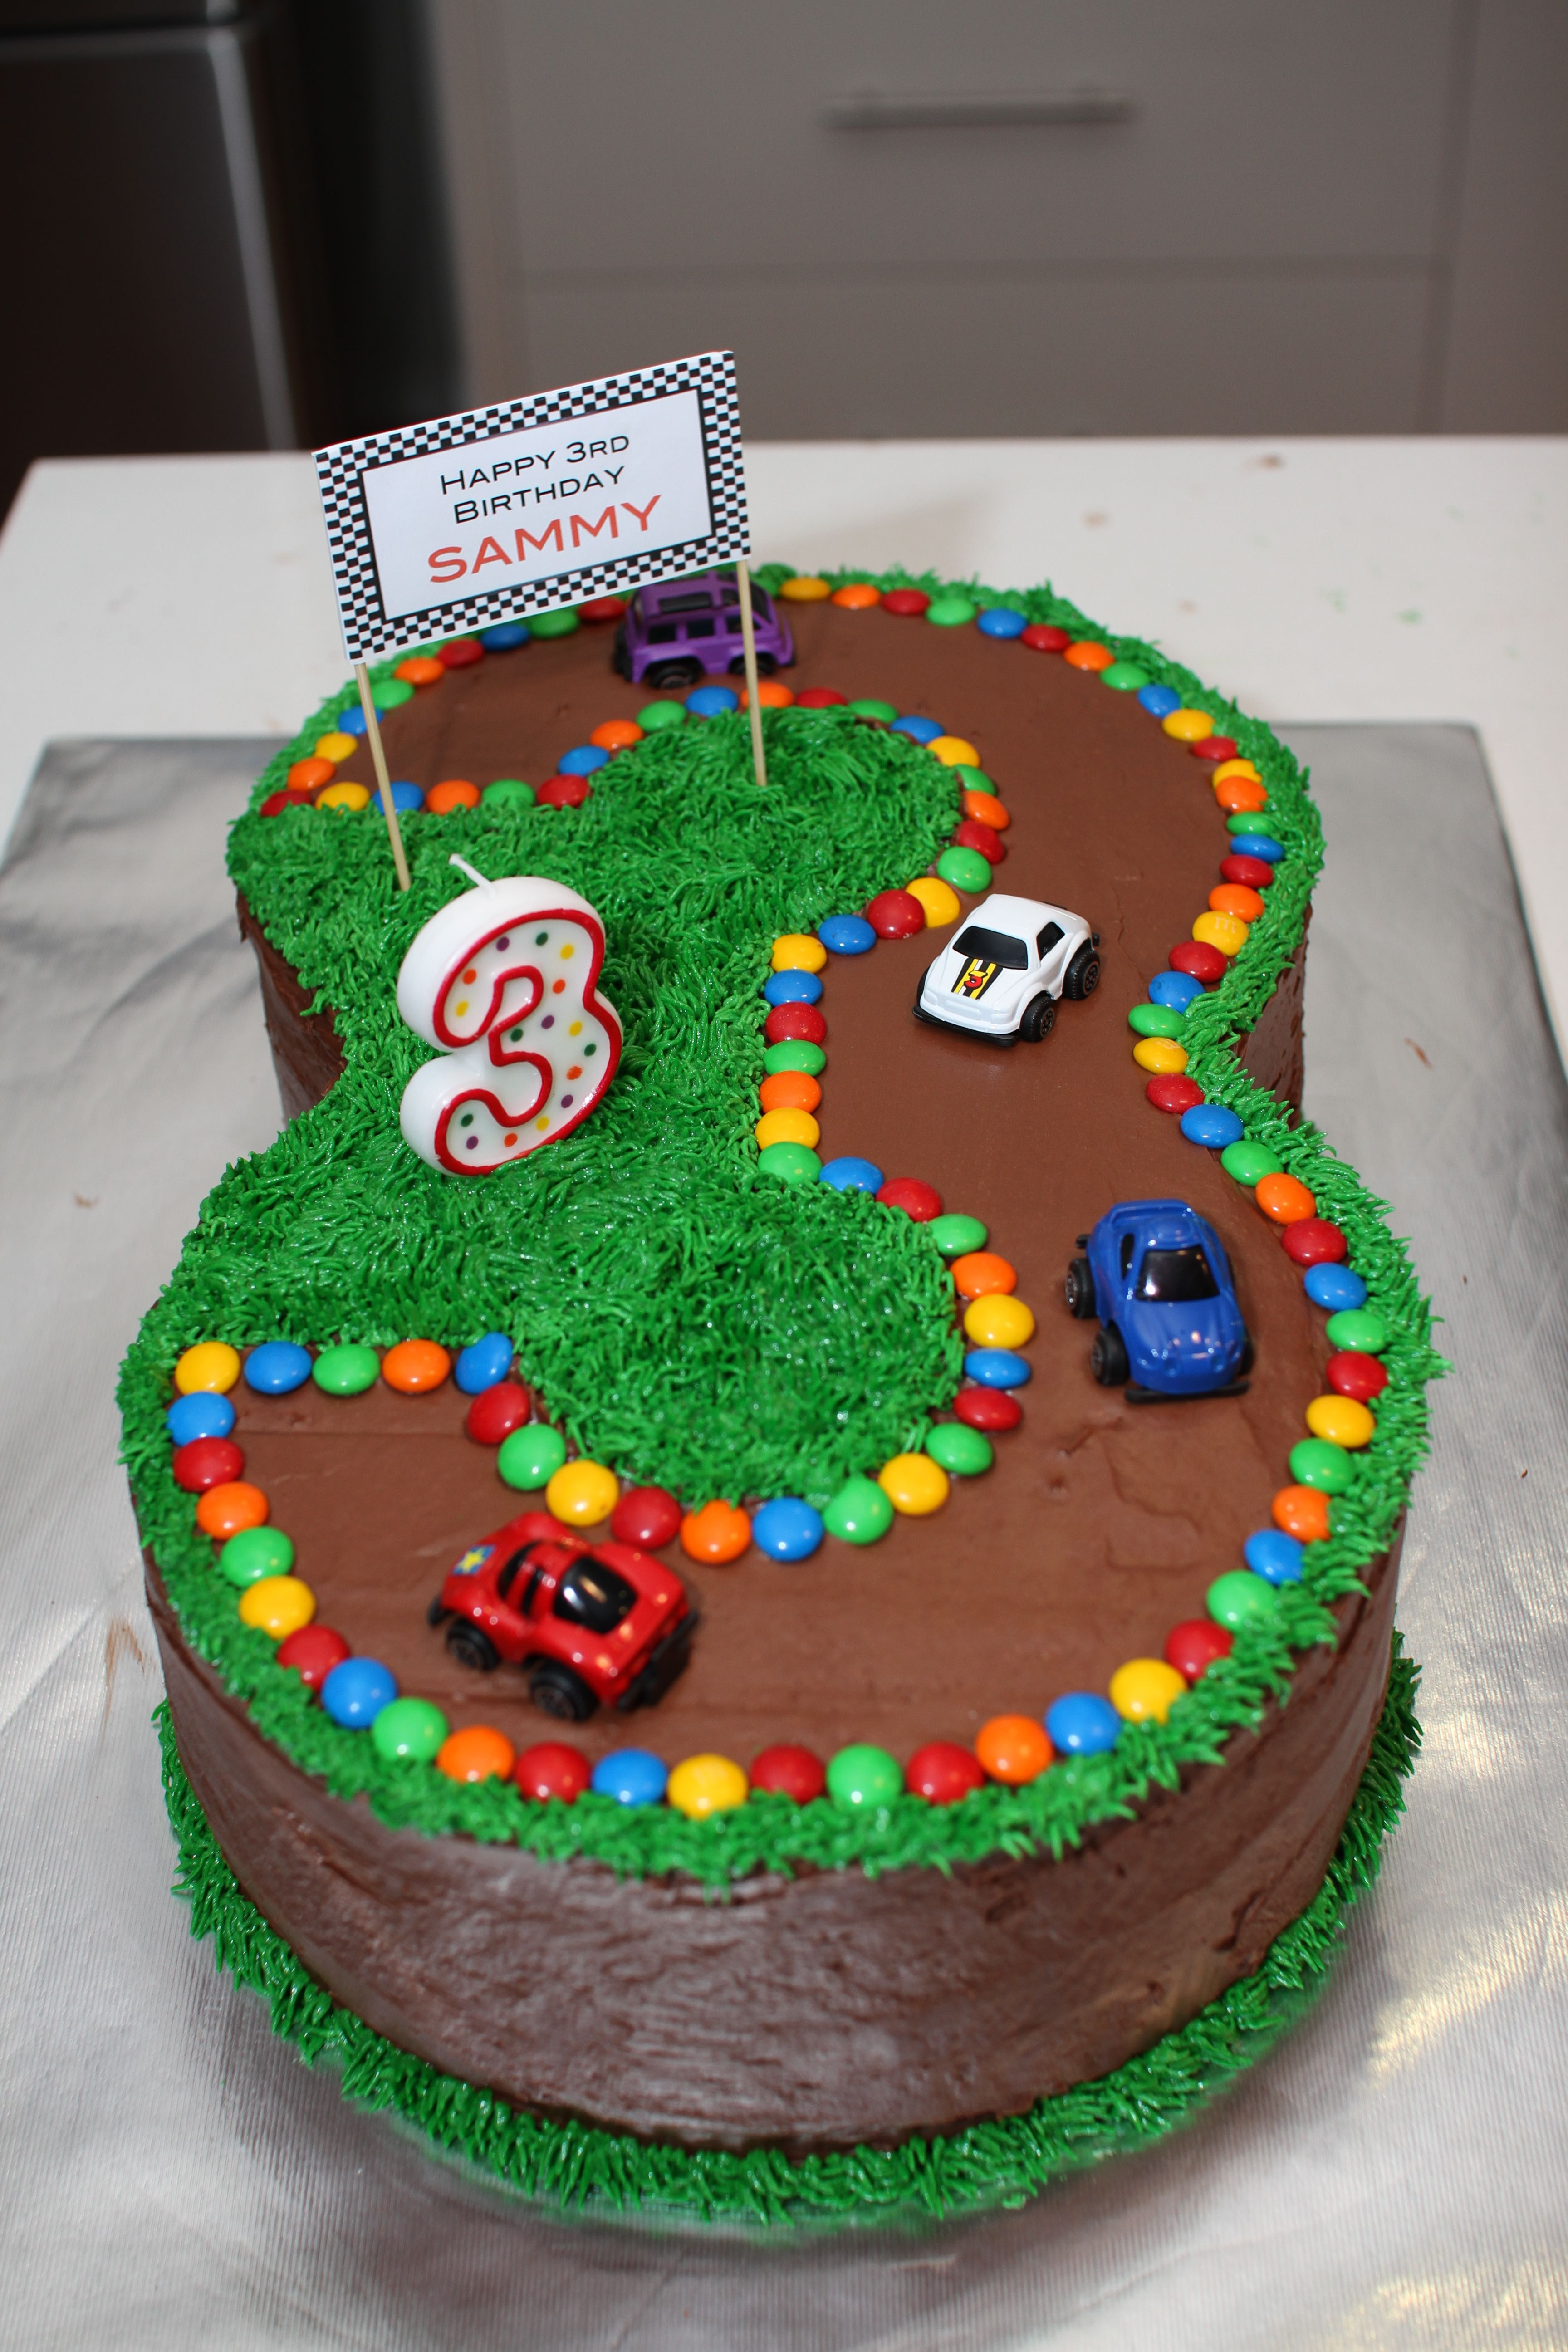 Best ideas about Birthday Cake For 3 Year Old Boy . Save or Pin No 3 Race Track Cake for 3rd Birthday … Now.